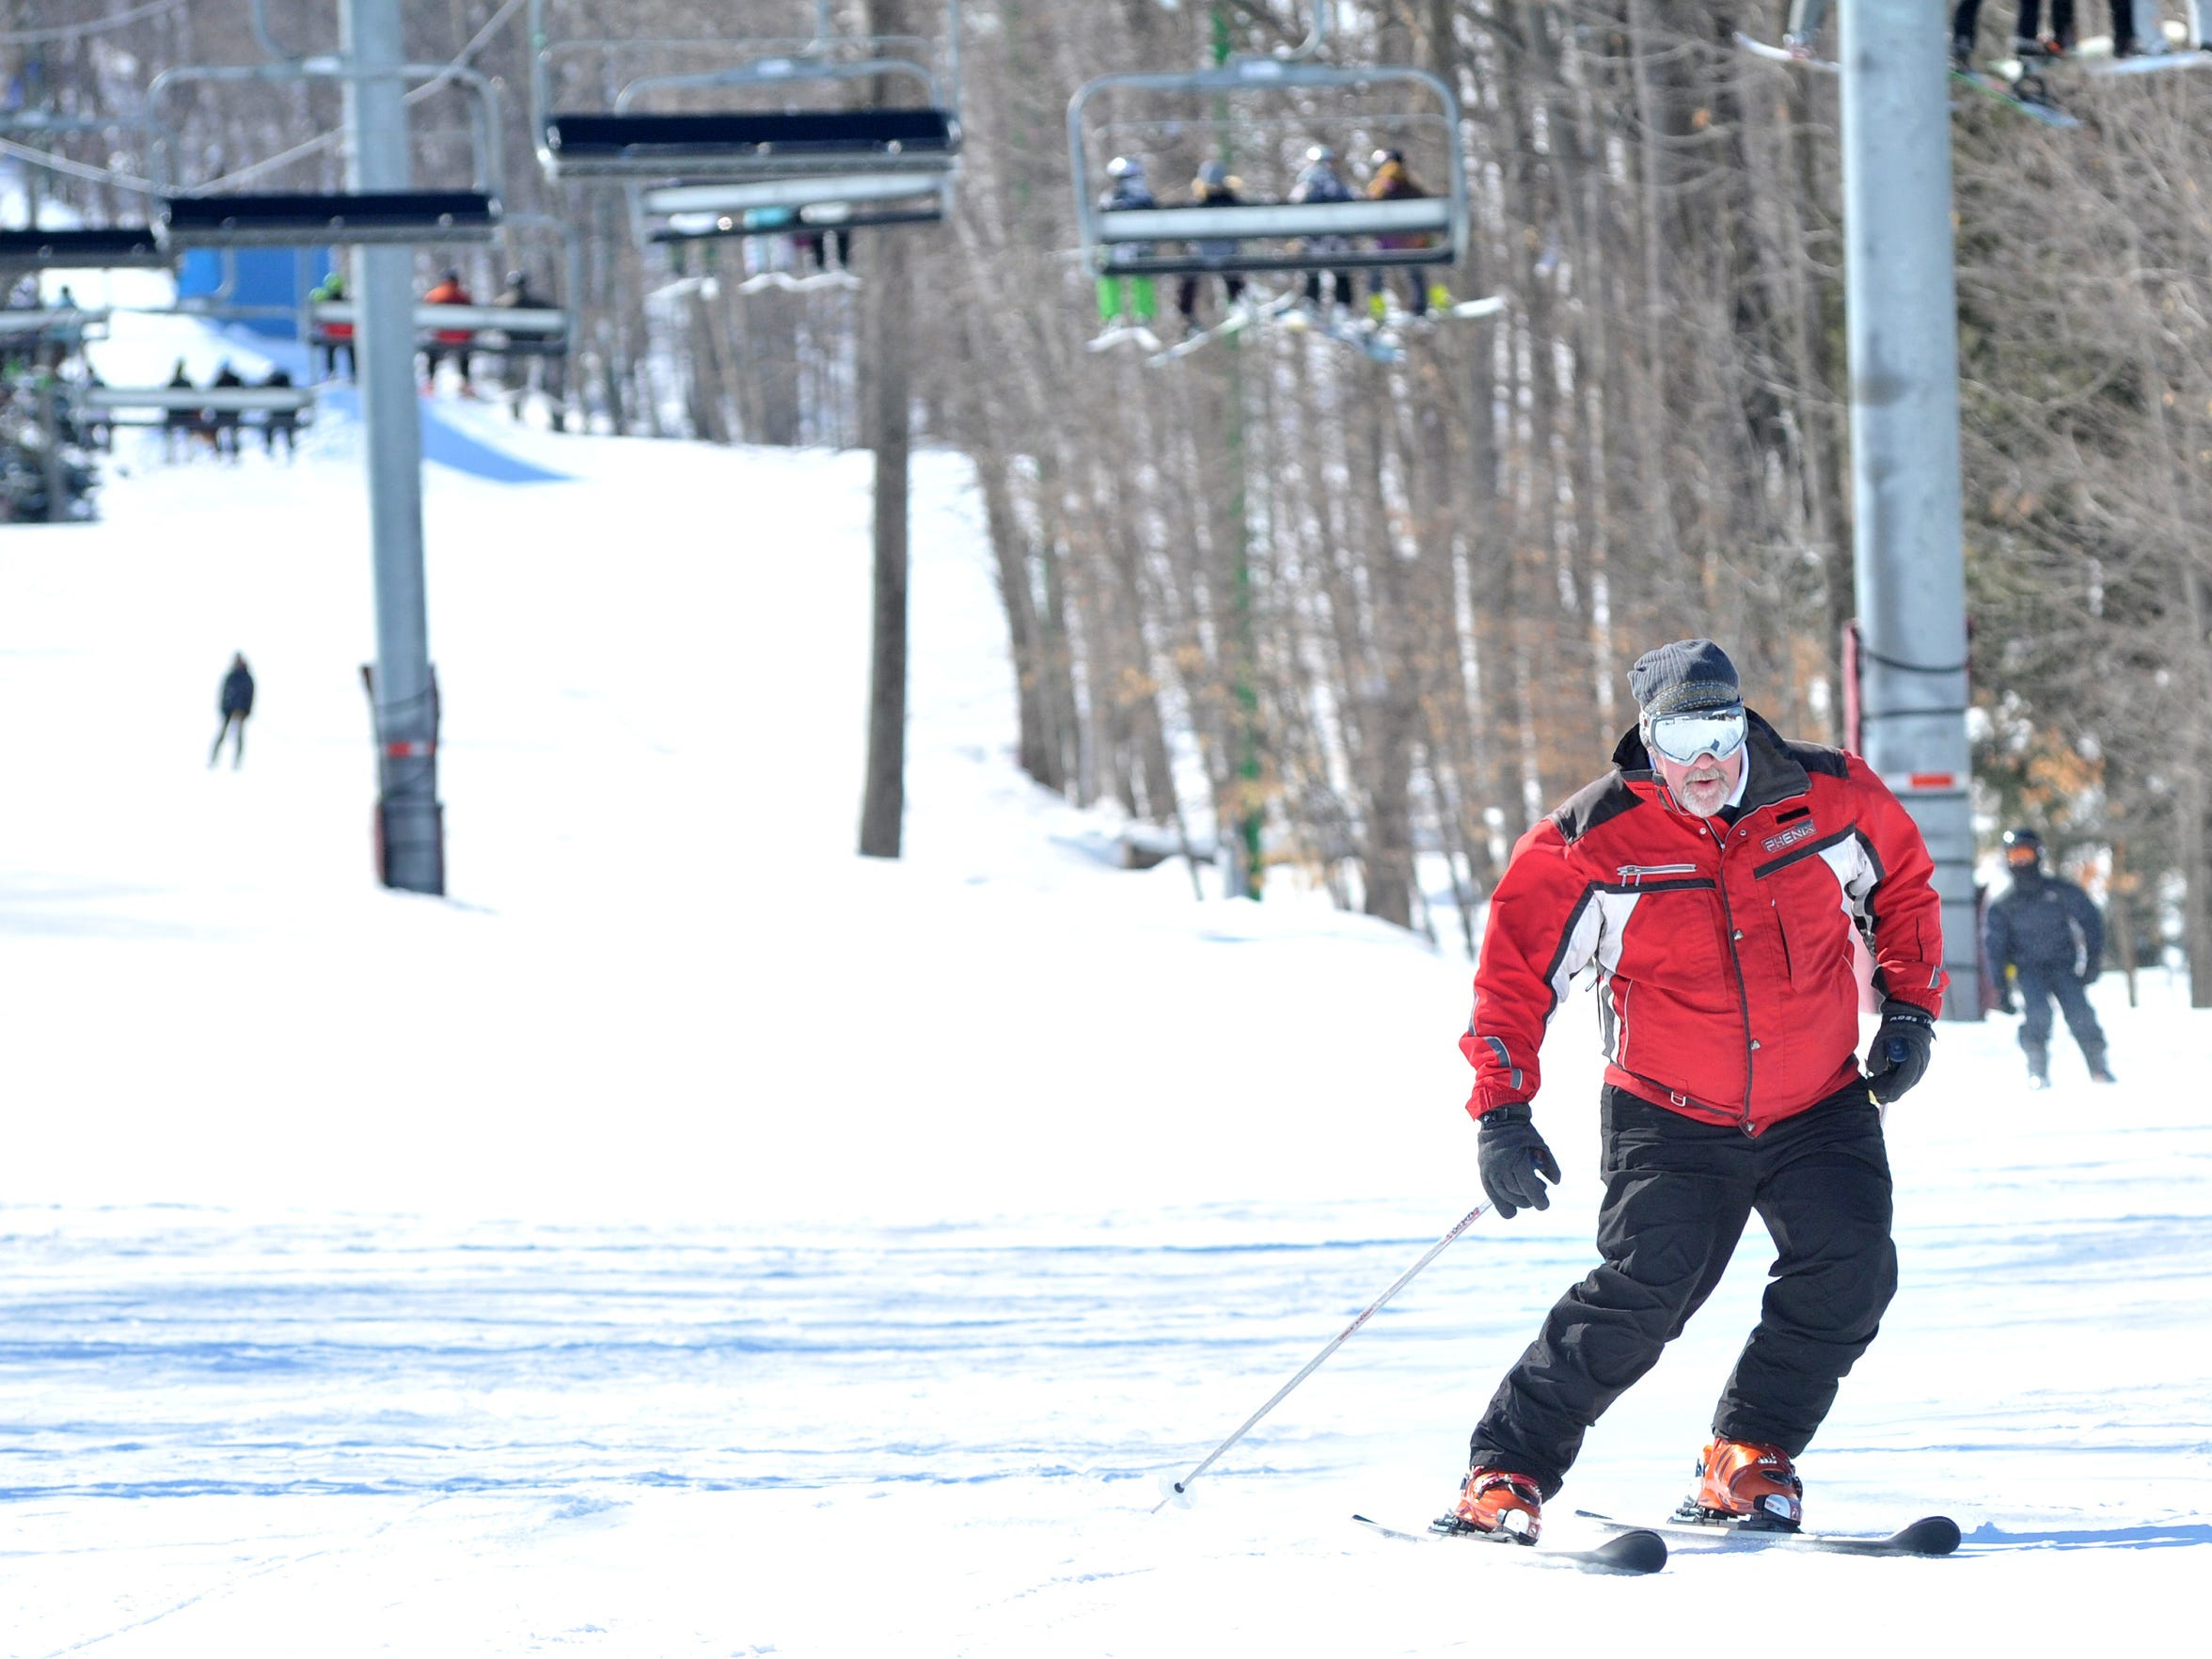 Granite Peak Ski Area has applied for a permit to build a larger water intake system in order to make more snow.